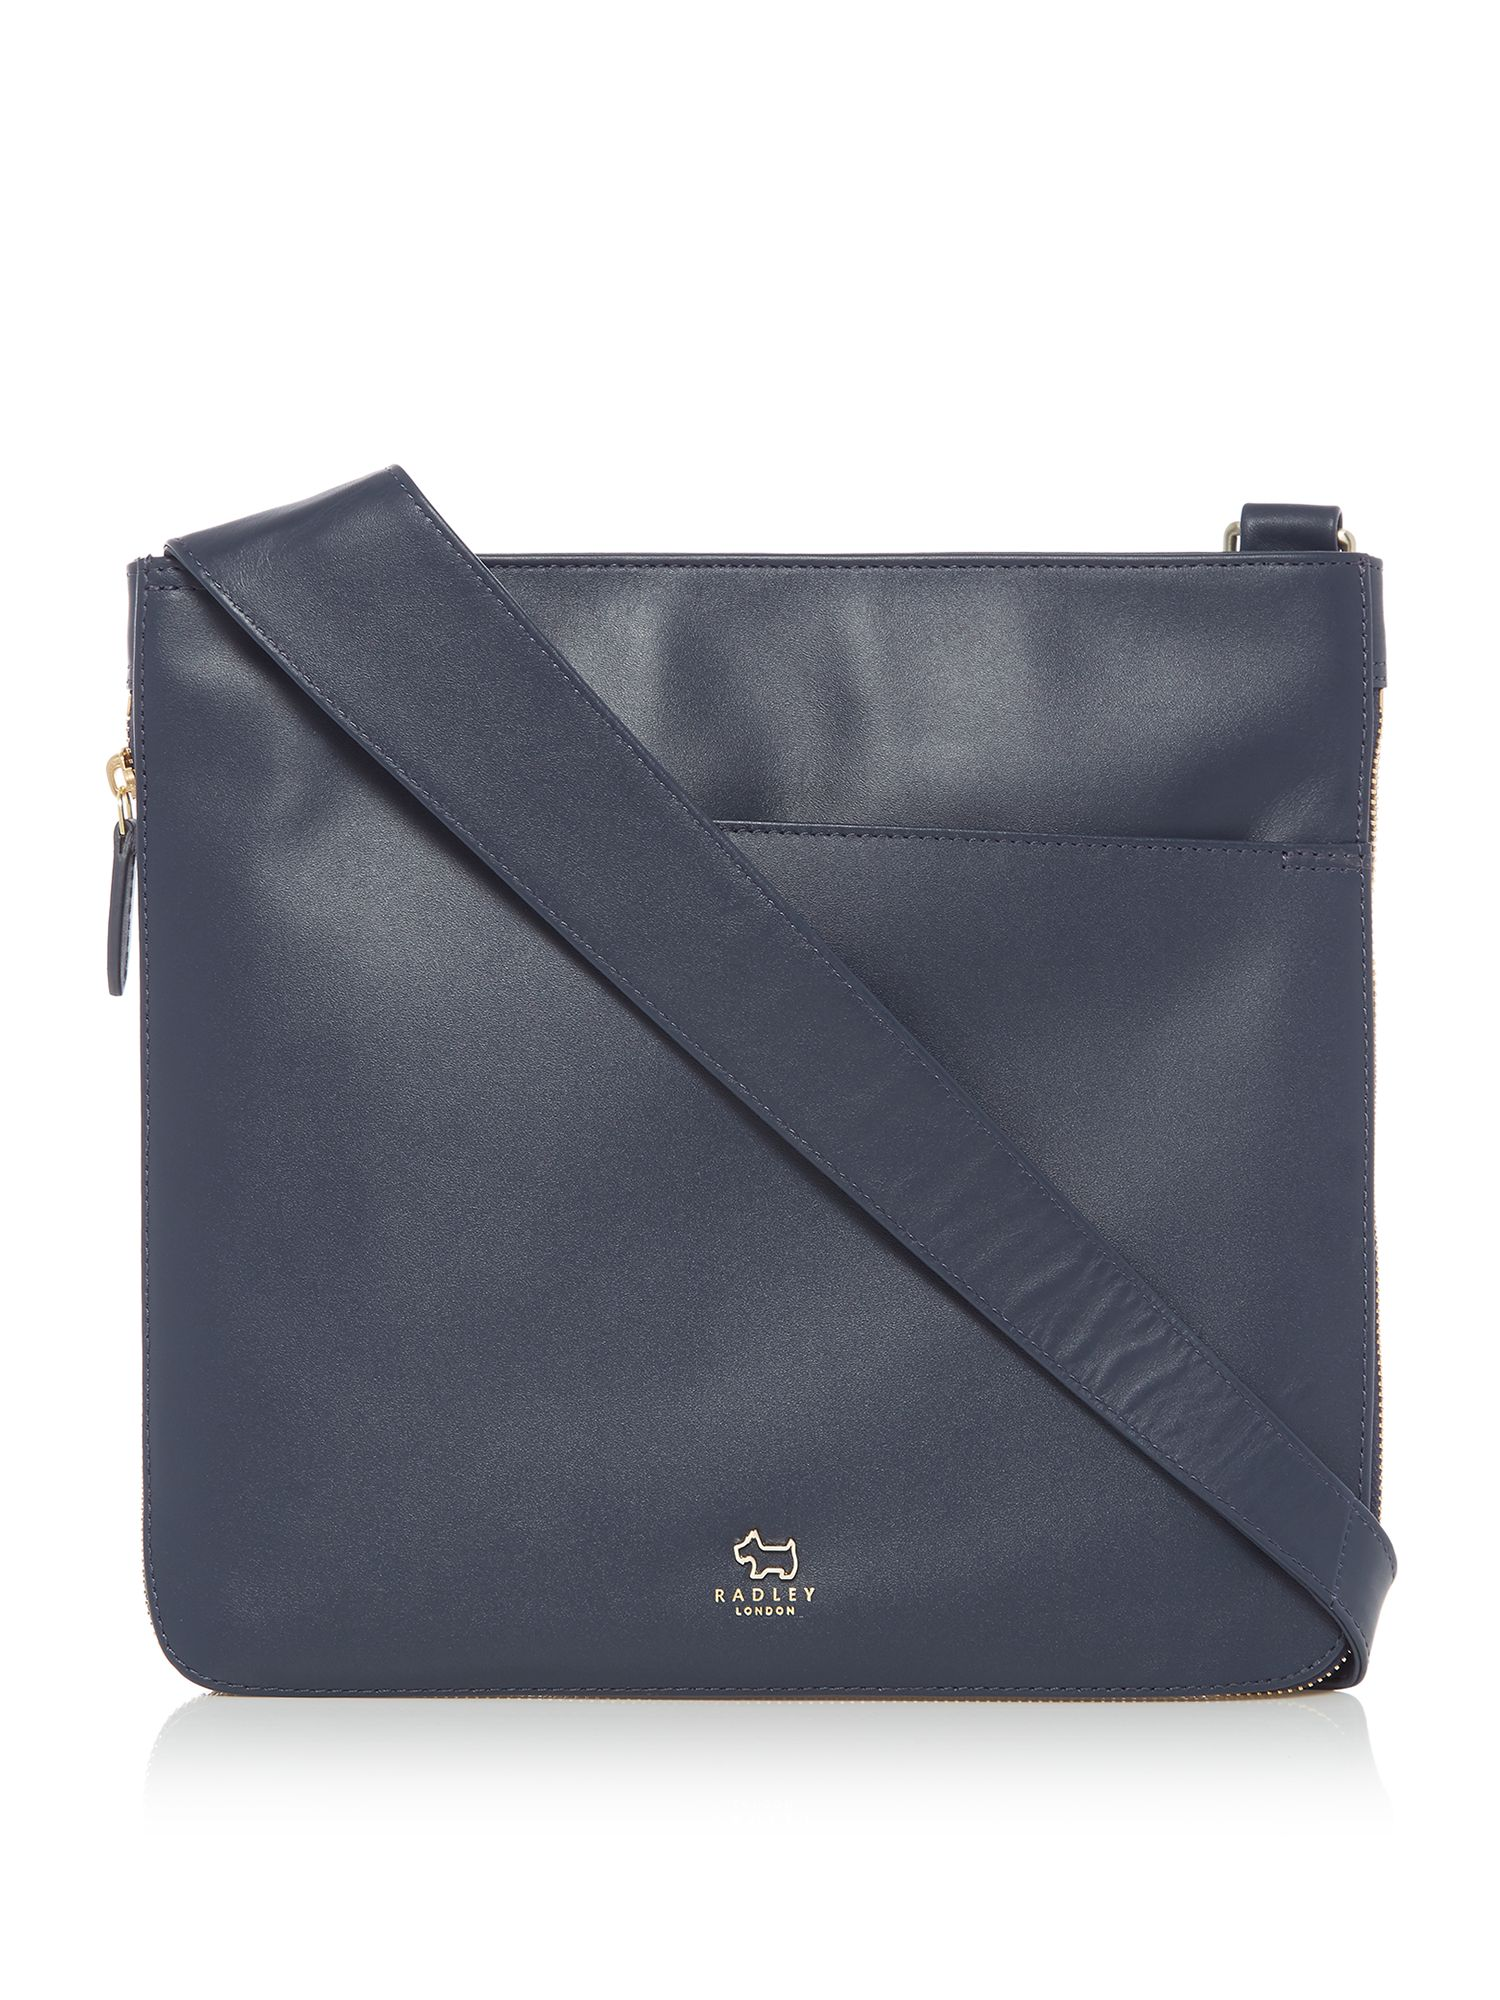 Radley Pocket bag large zip cross body bag Navy